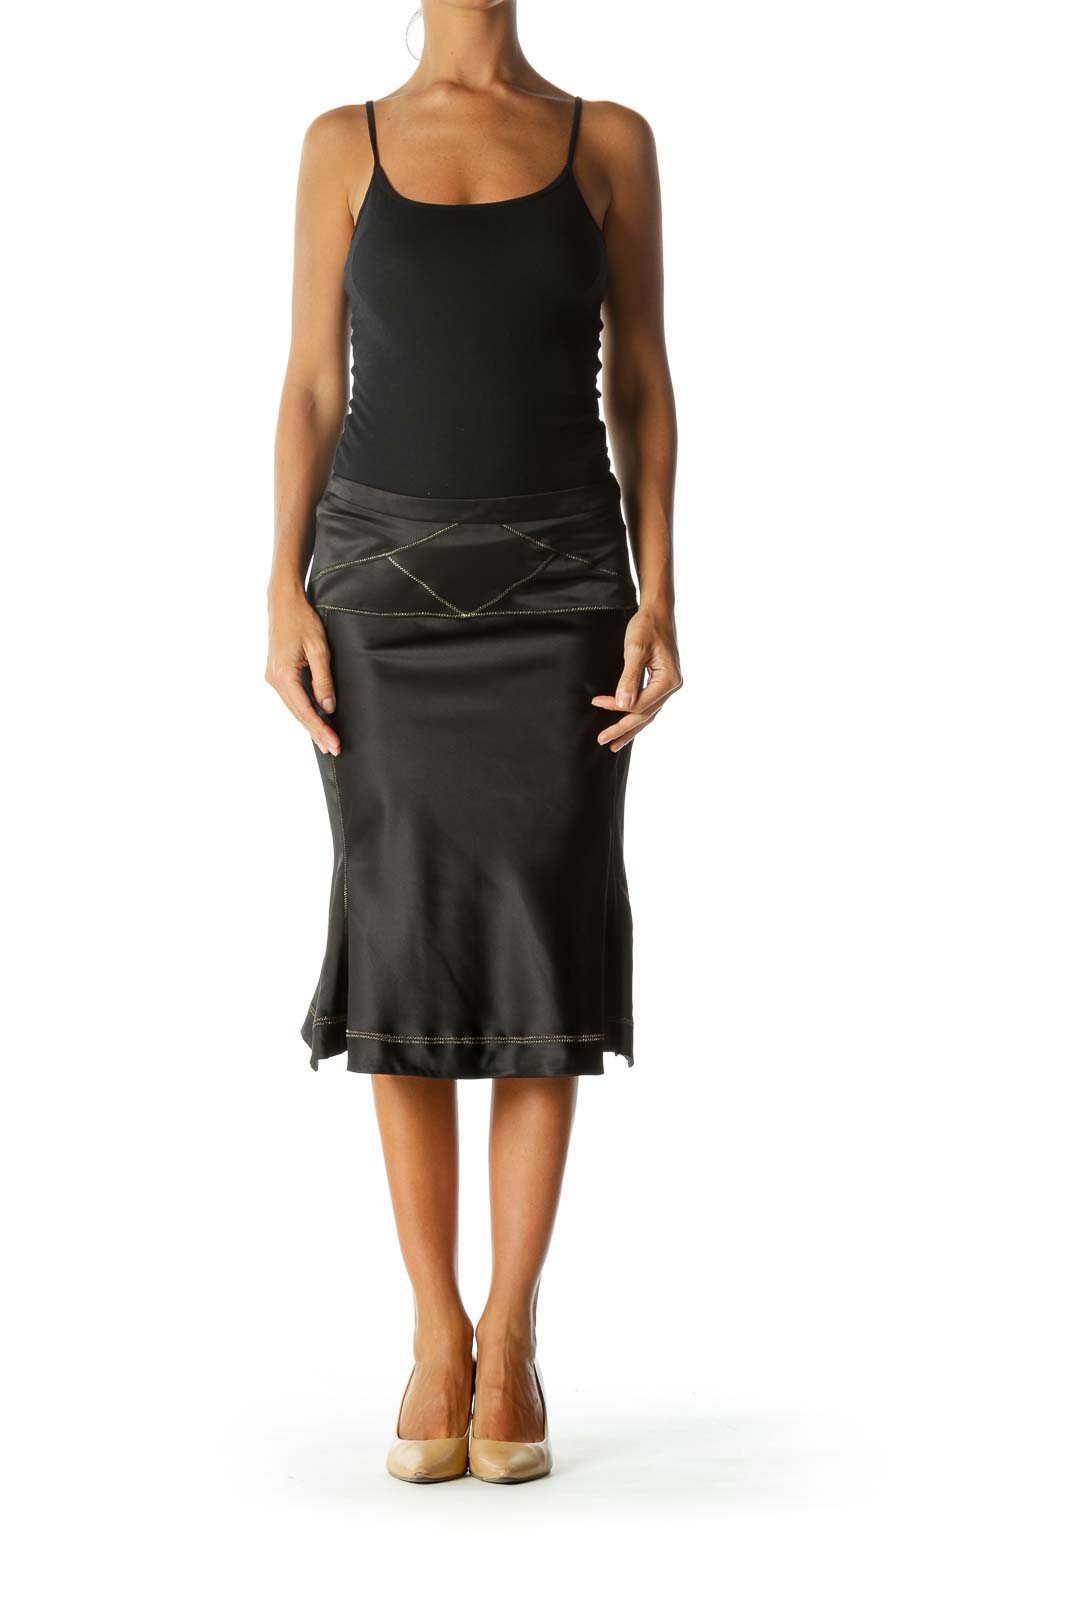 Black Flared Pencil Skirt with Gold Detail